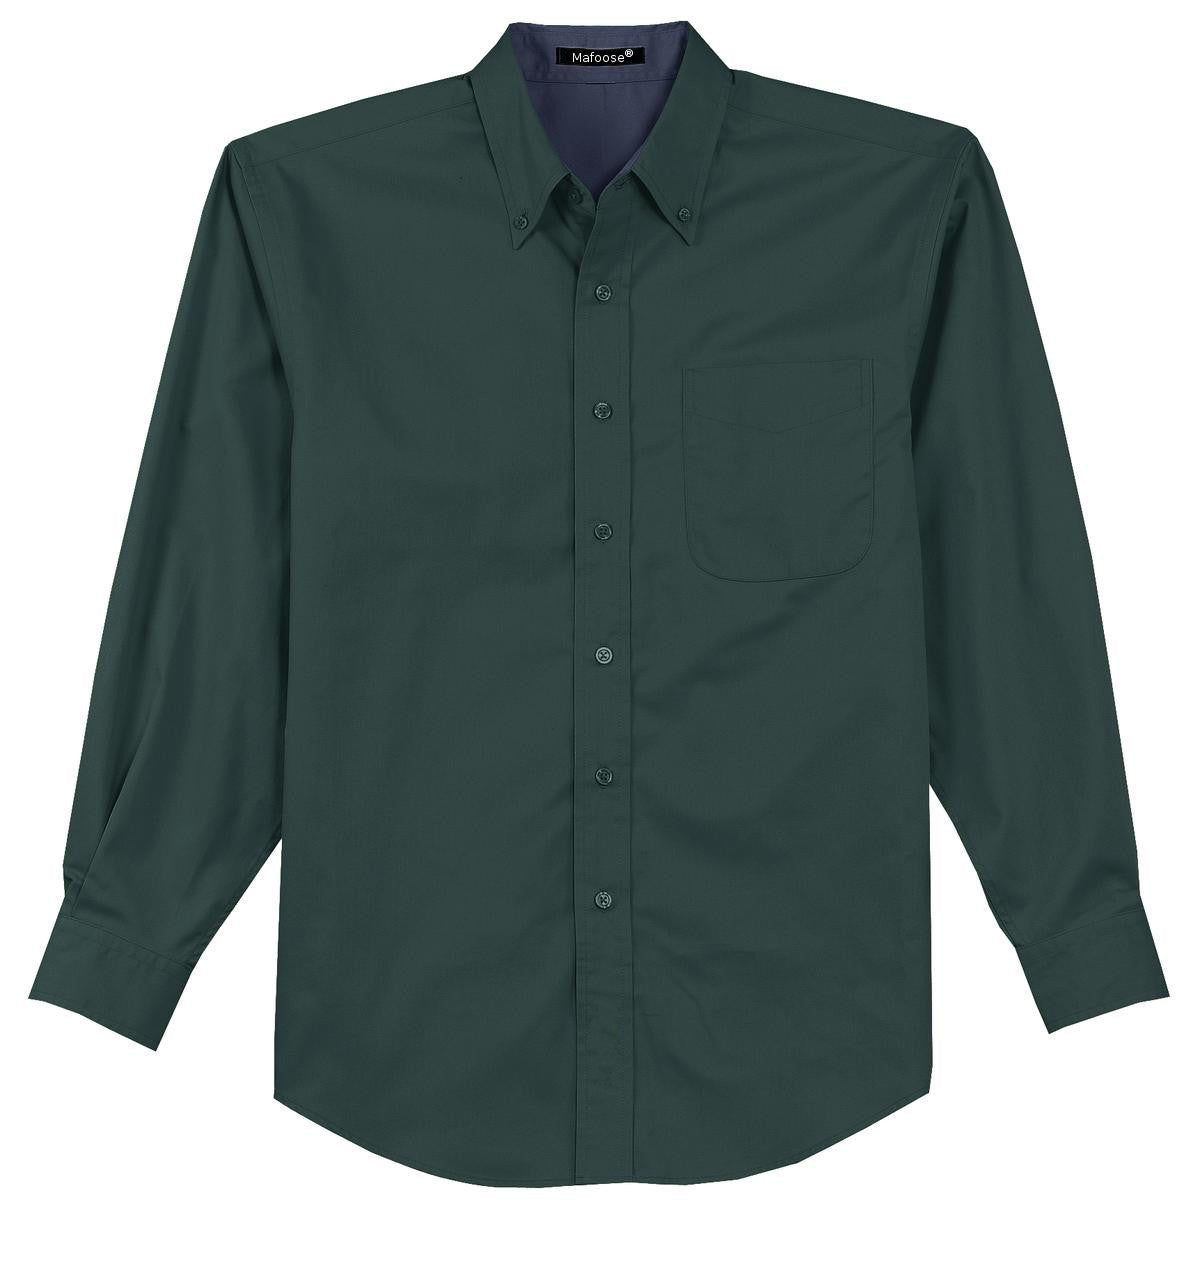 Mafoose Men's Tall Long Sleeve Easy Care Shirt Dark Green/ Navy-Front